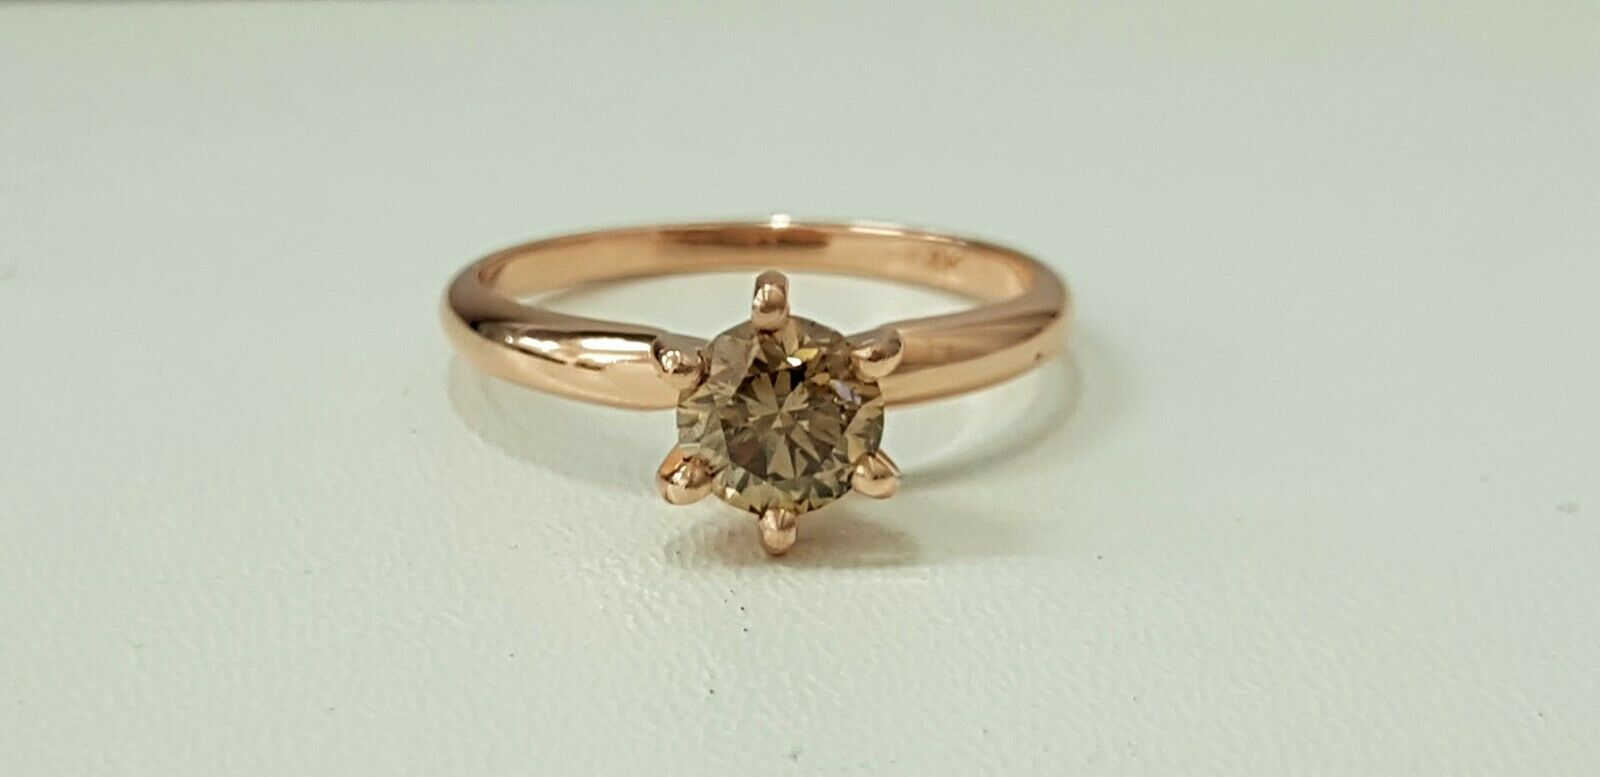 0.75ct ROUND CUT solitaire diamond engagement Ring 14K pink gold FANCY COLOR VS2